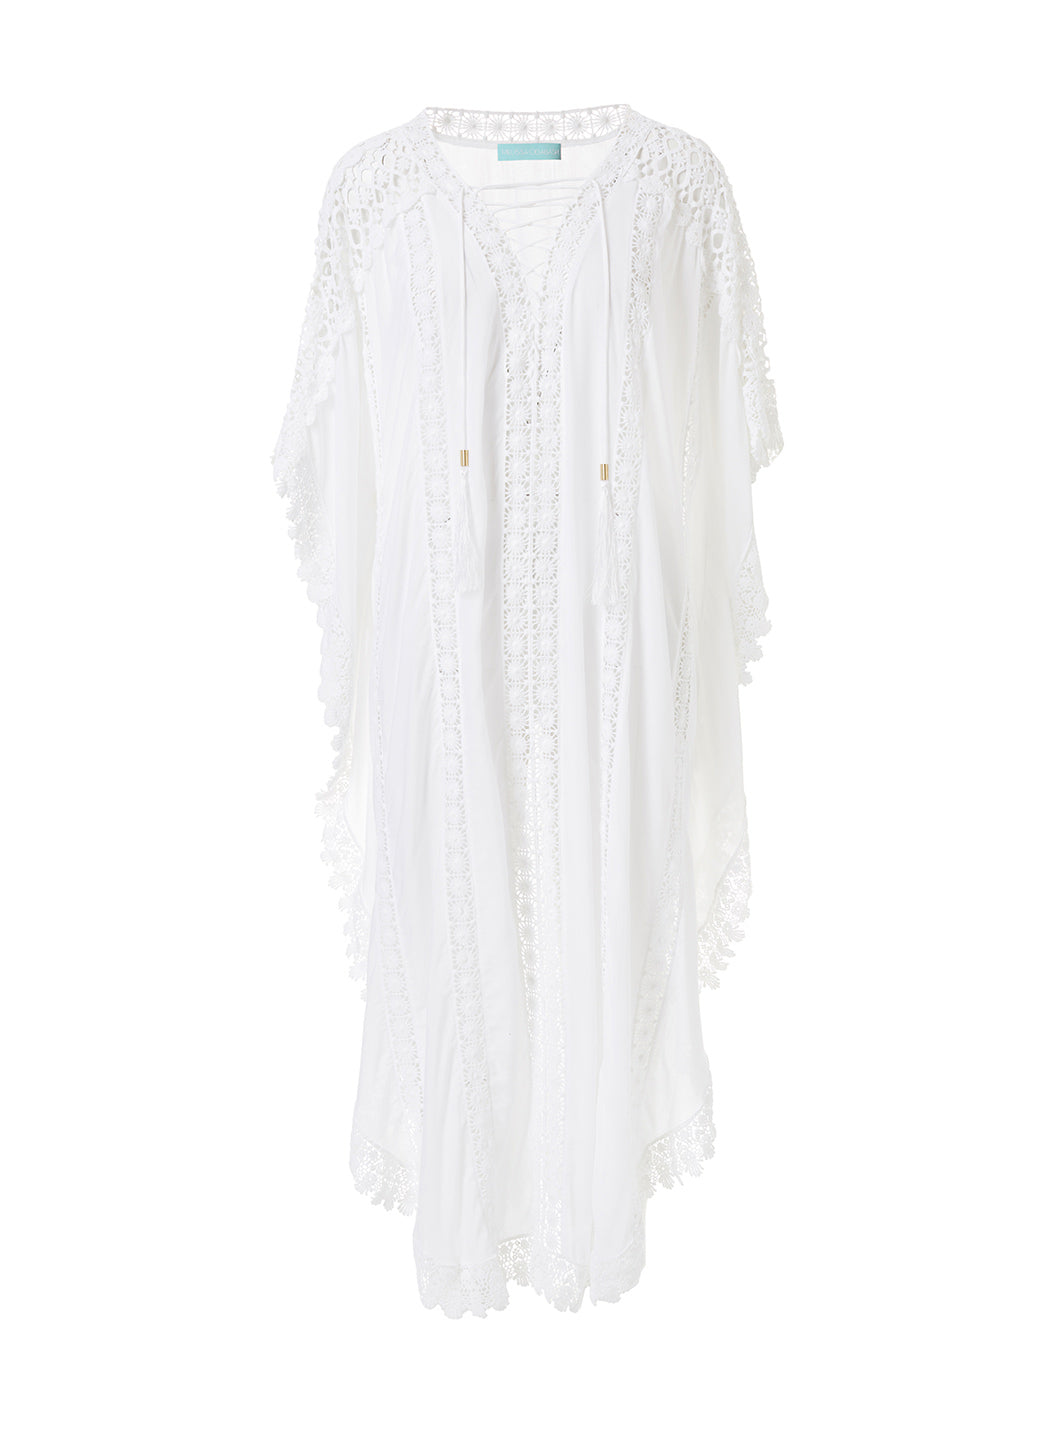 Nicki White Lace Embroidered V-Neck Maxi Kaftan - Melissa Odabash Beachwear